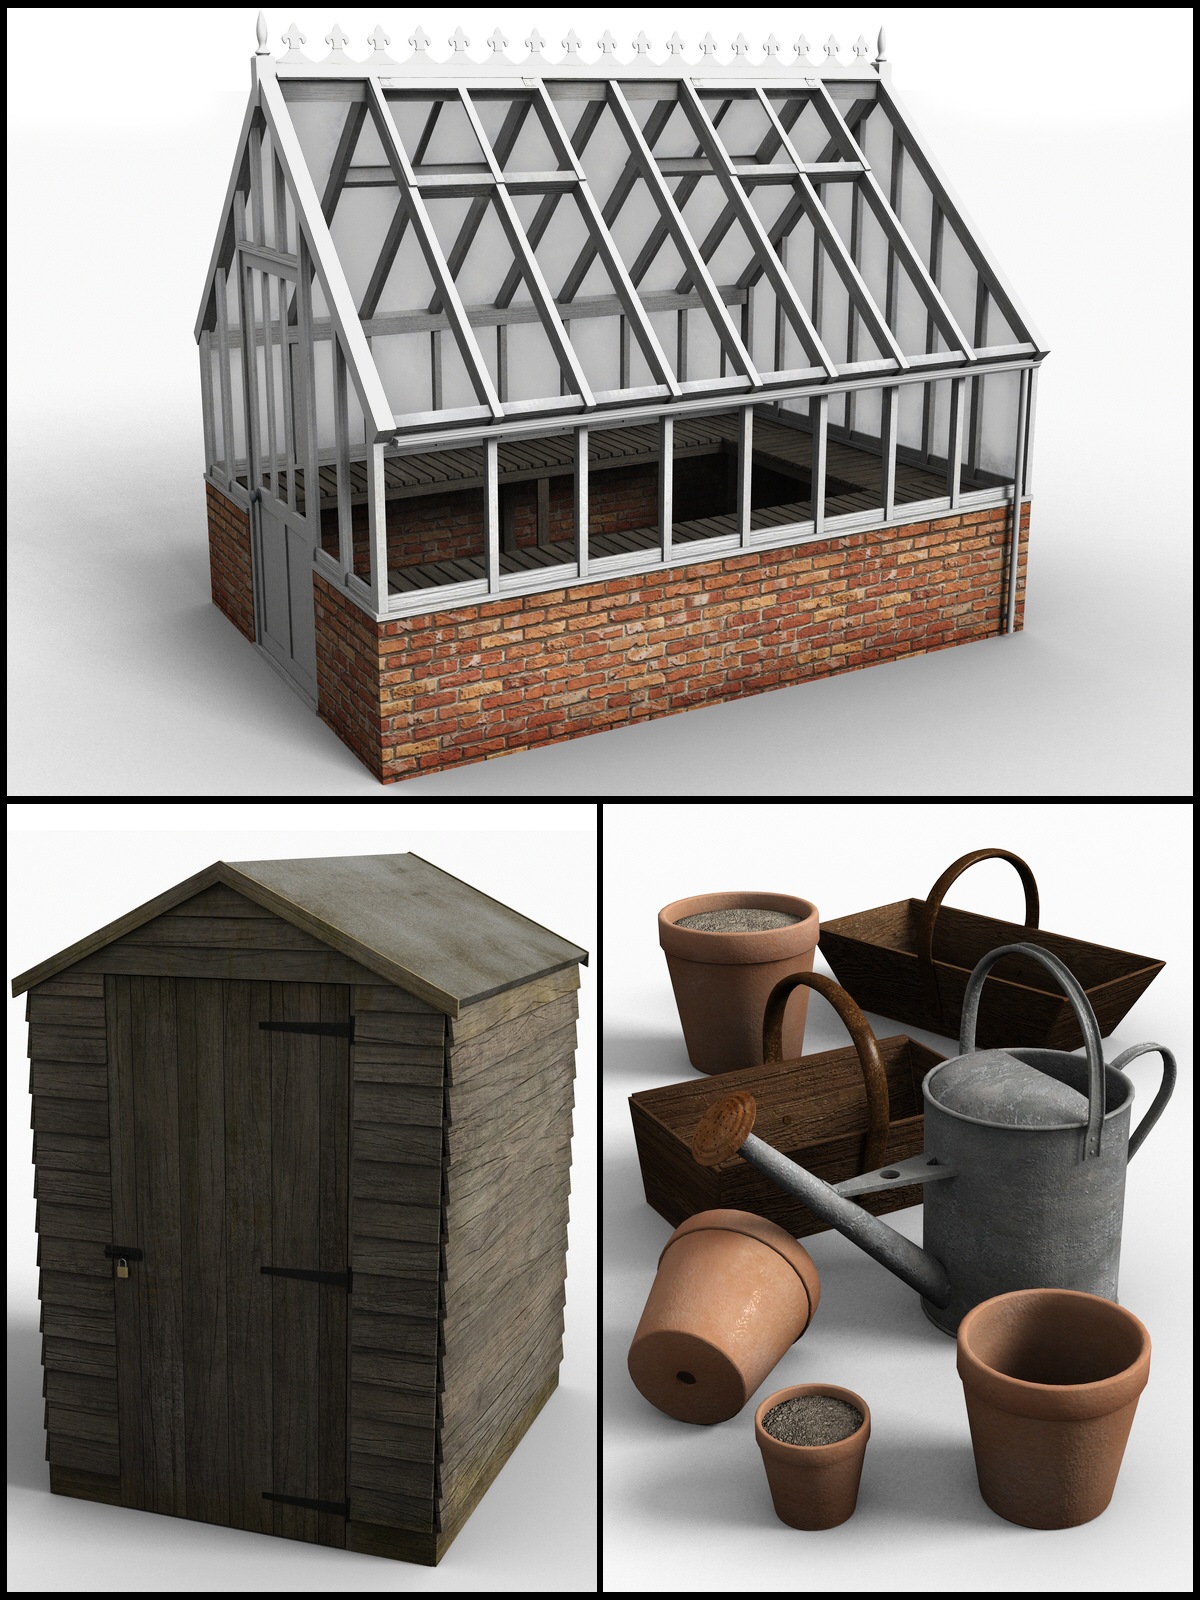 Victorian greenhouse set - Extended License by DryJack